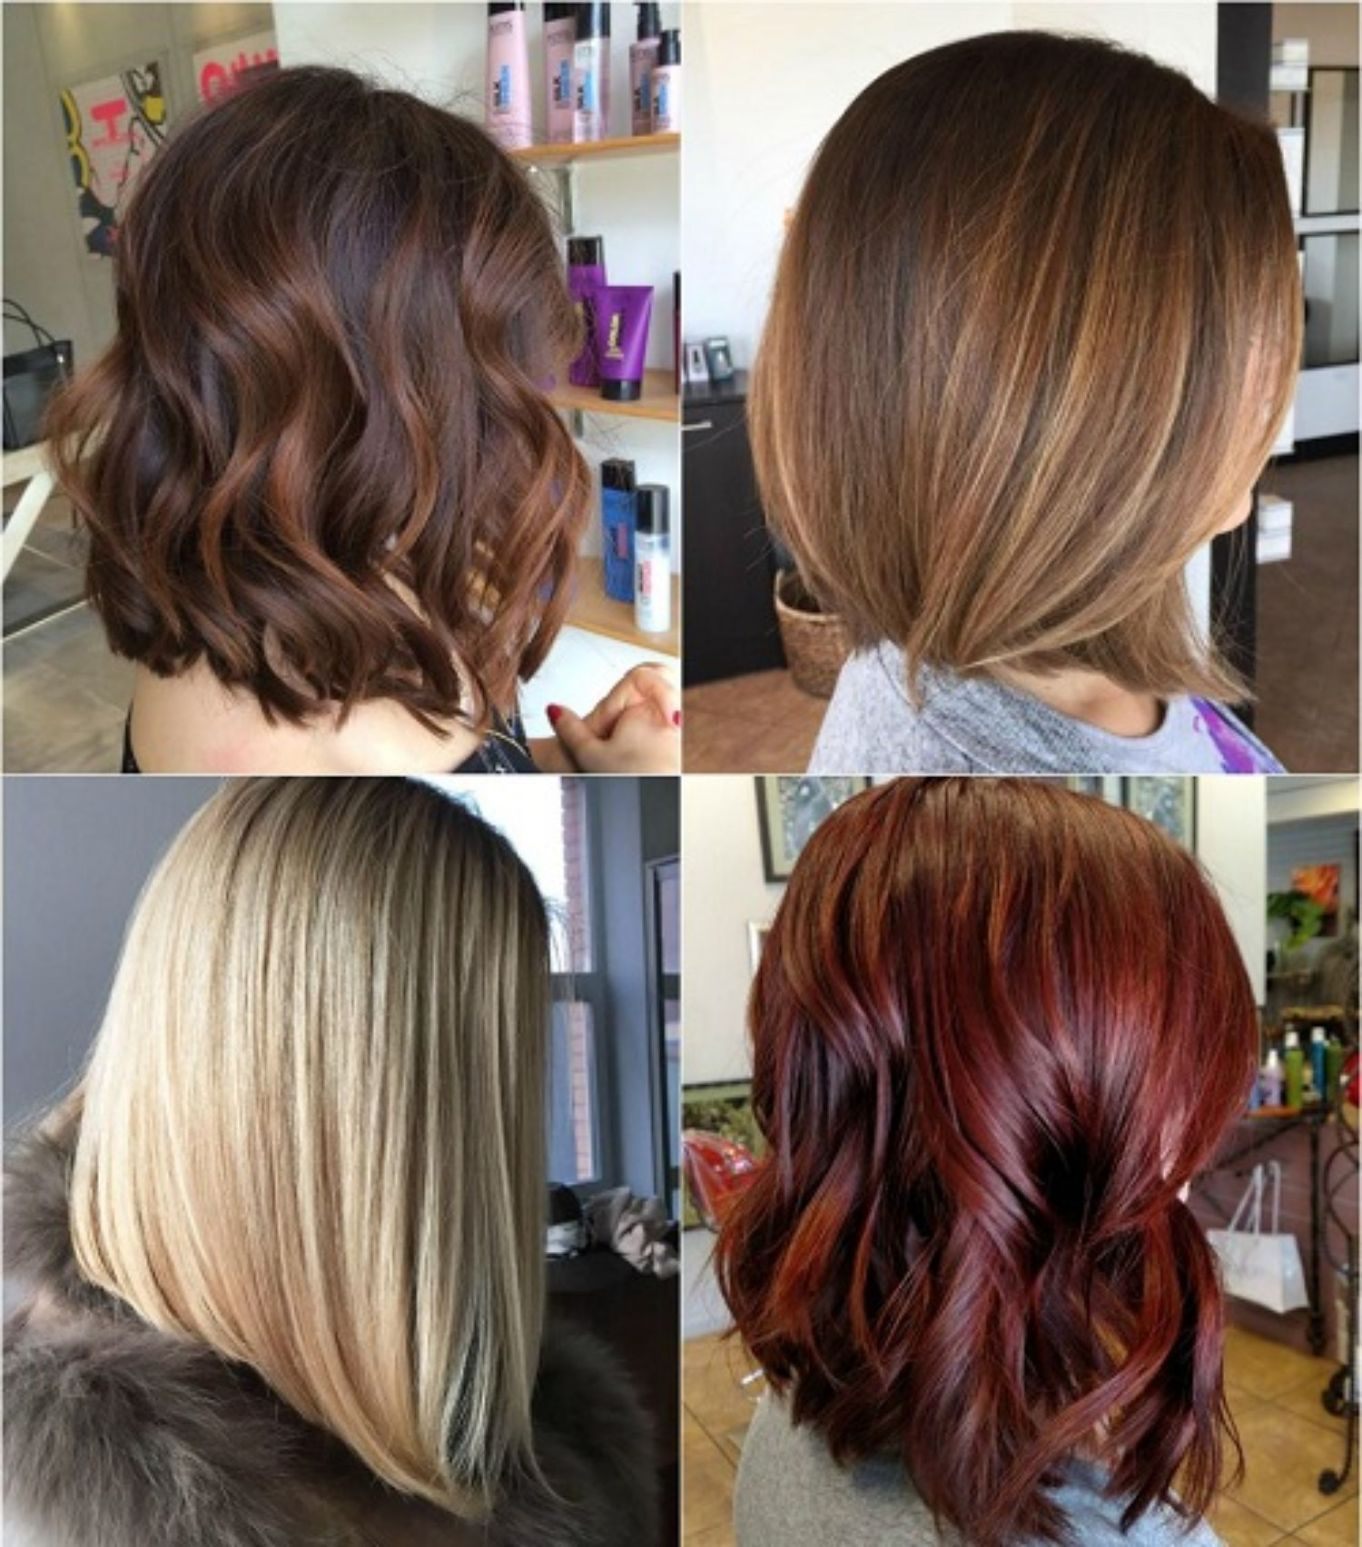 Pin On Makeup Hair Style